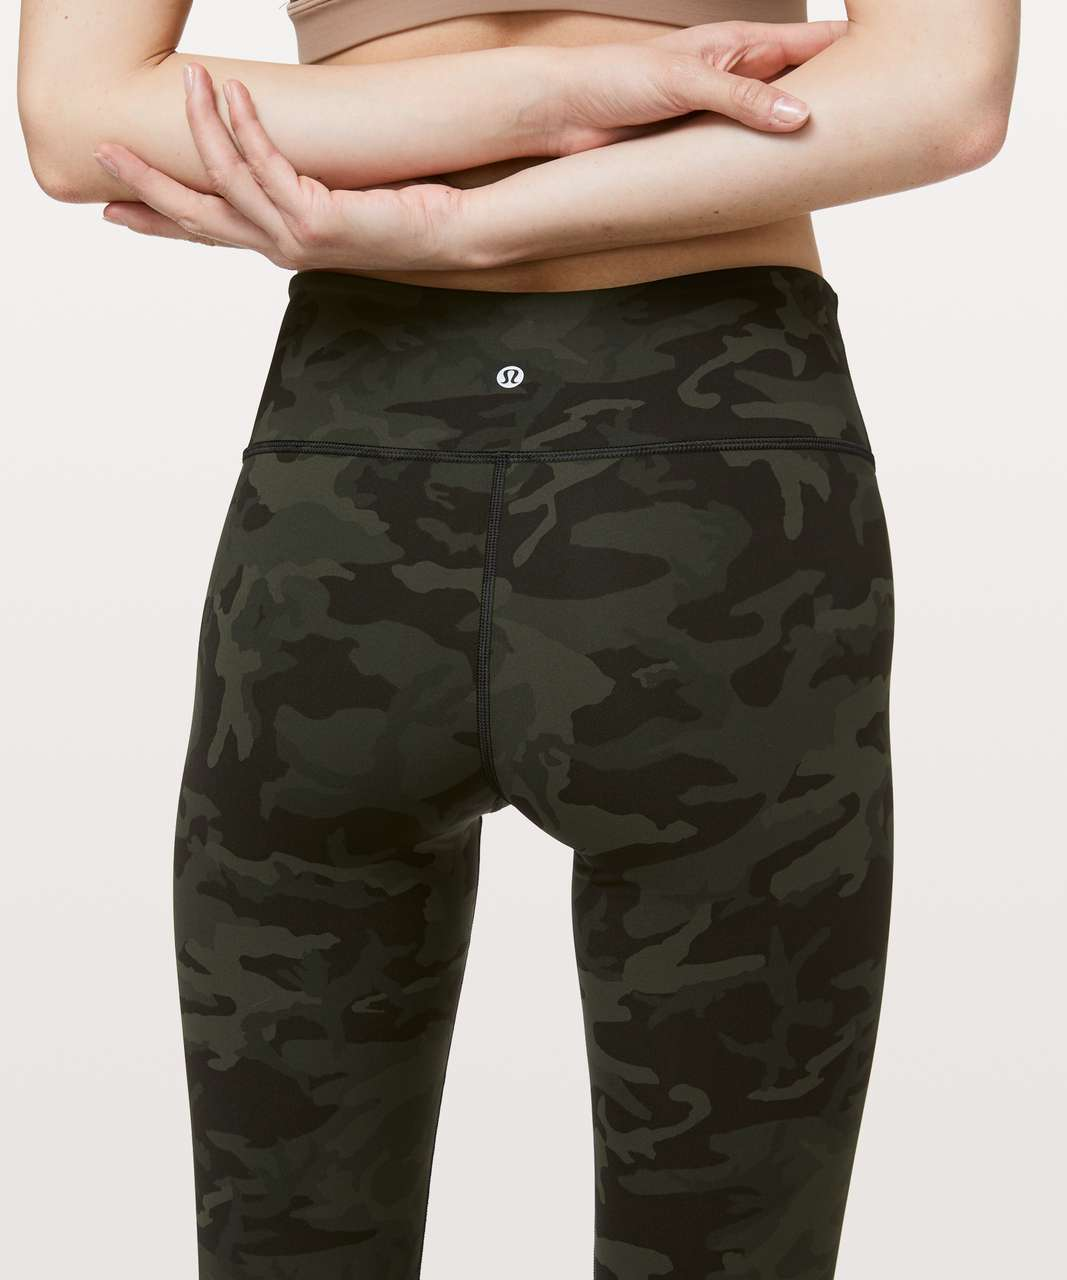 "Lululemon Wunder Under Crop III Full-On Luxtreme 21"" - Incognito Camo Multi Gator Green"